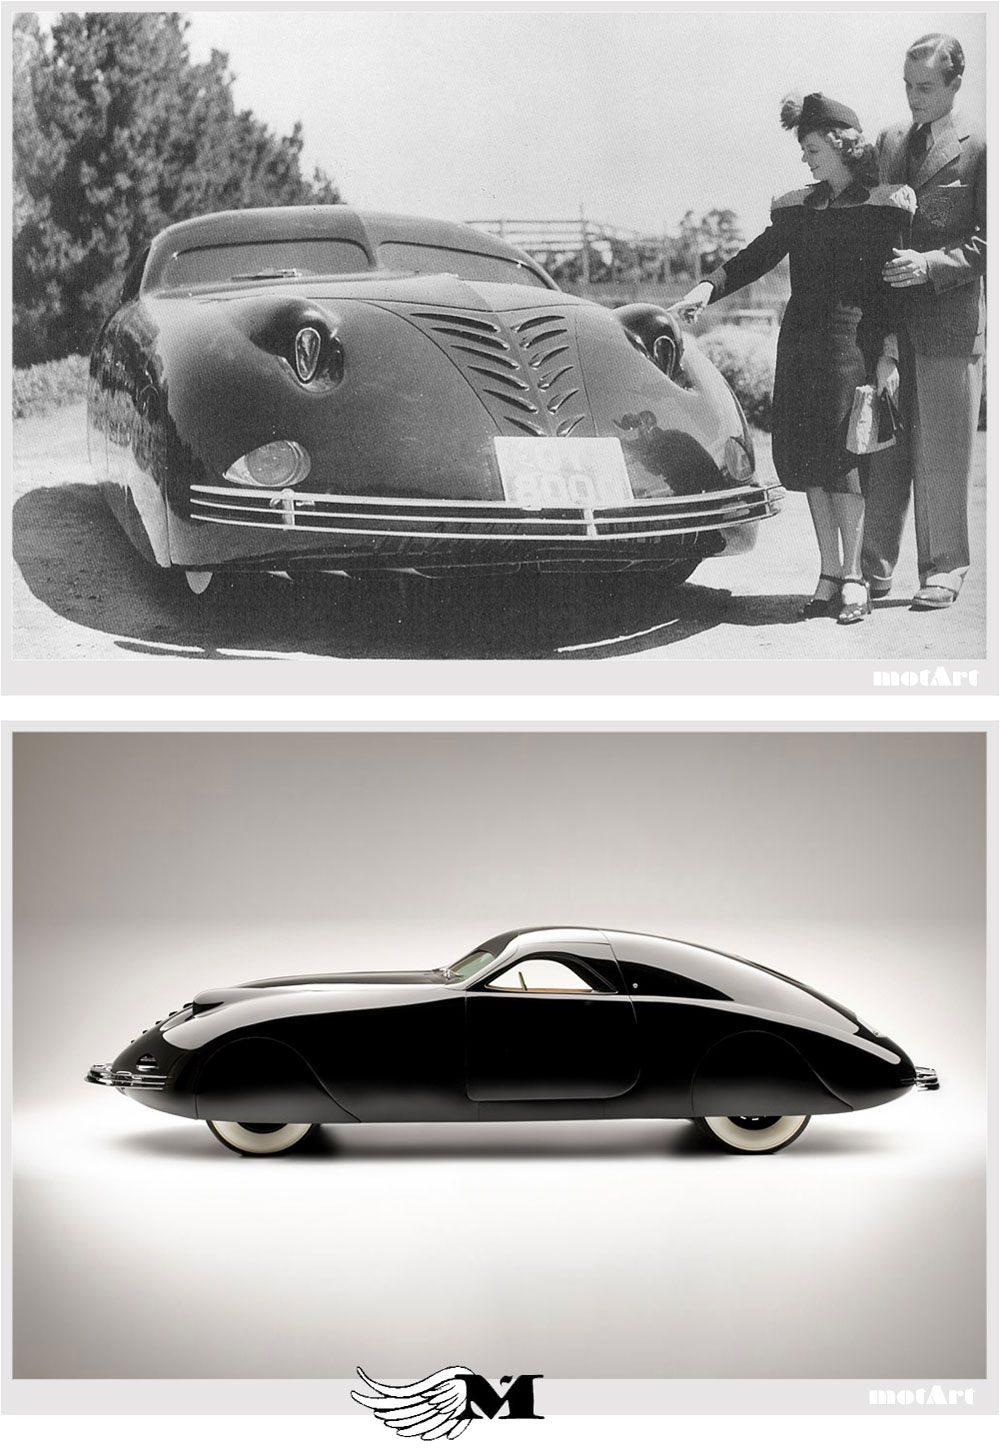 this car is art deco because the curvy line and straight one on the front